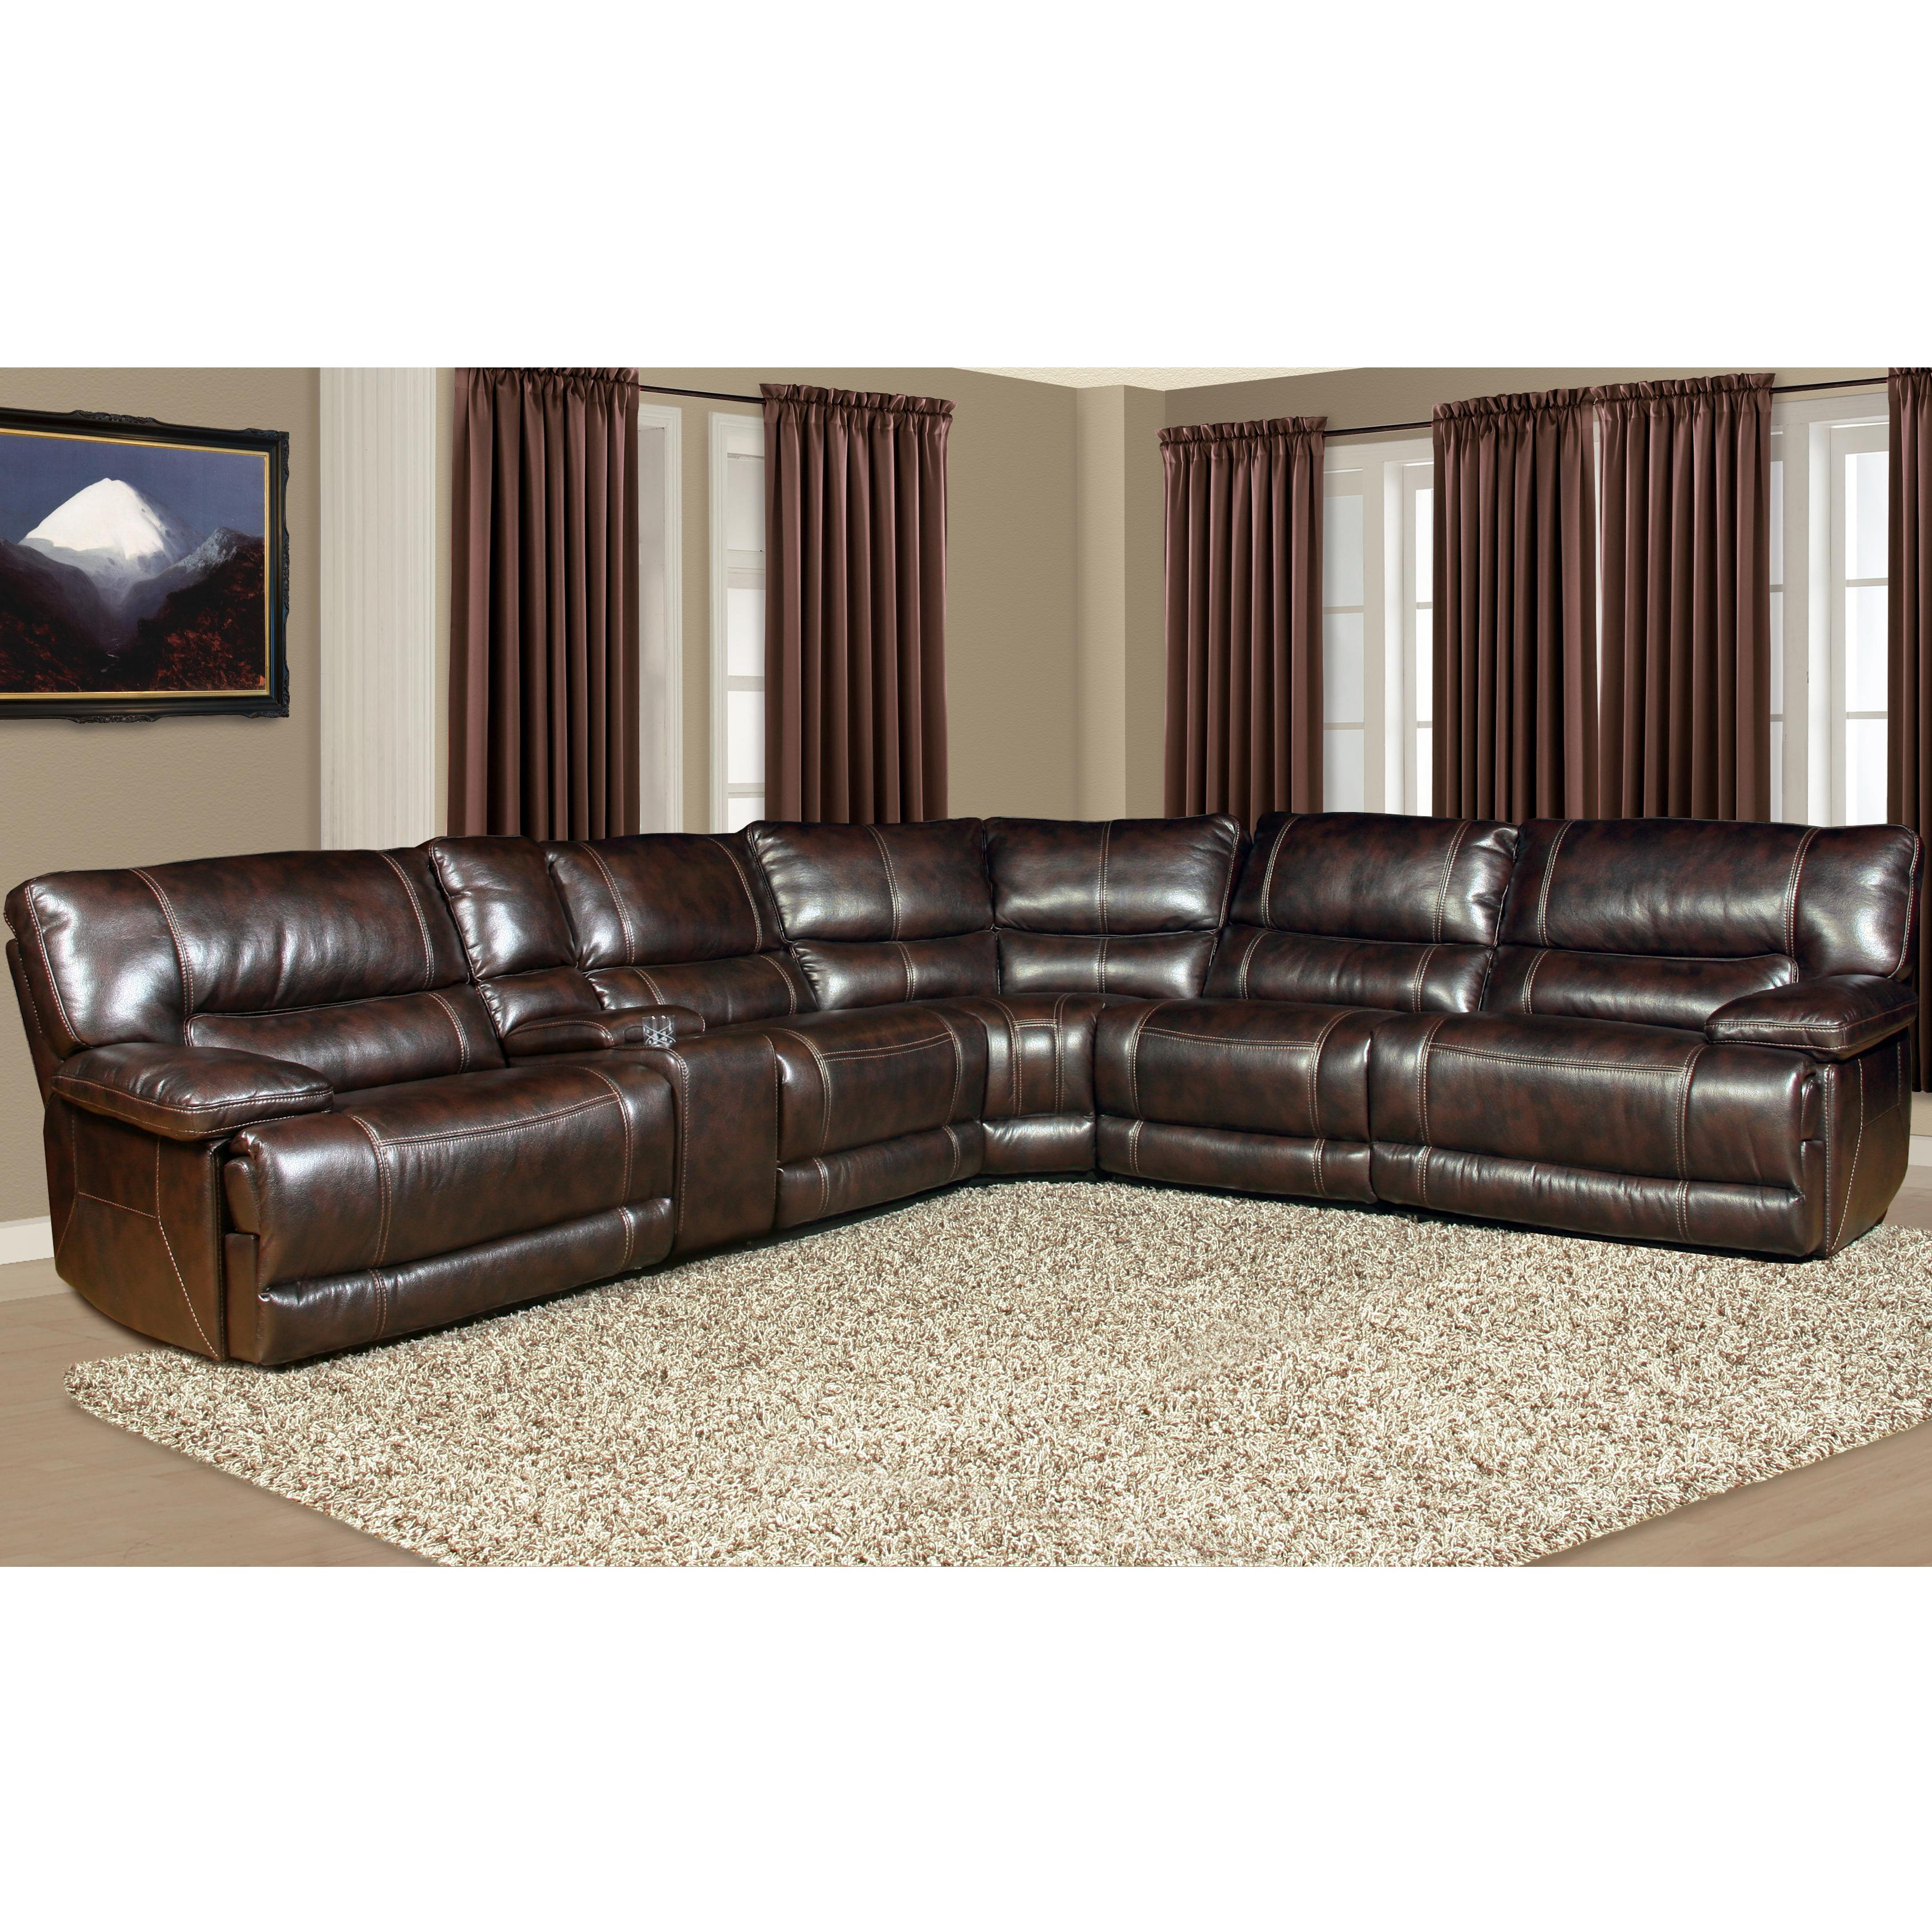 Parker Living Pegasus Power Reclining Sectional Sofa - Item Number: MPEG-PACKM-NU